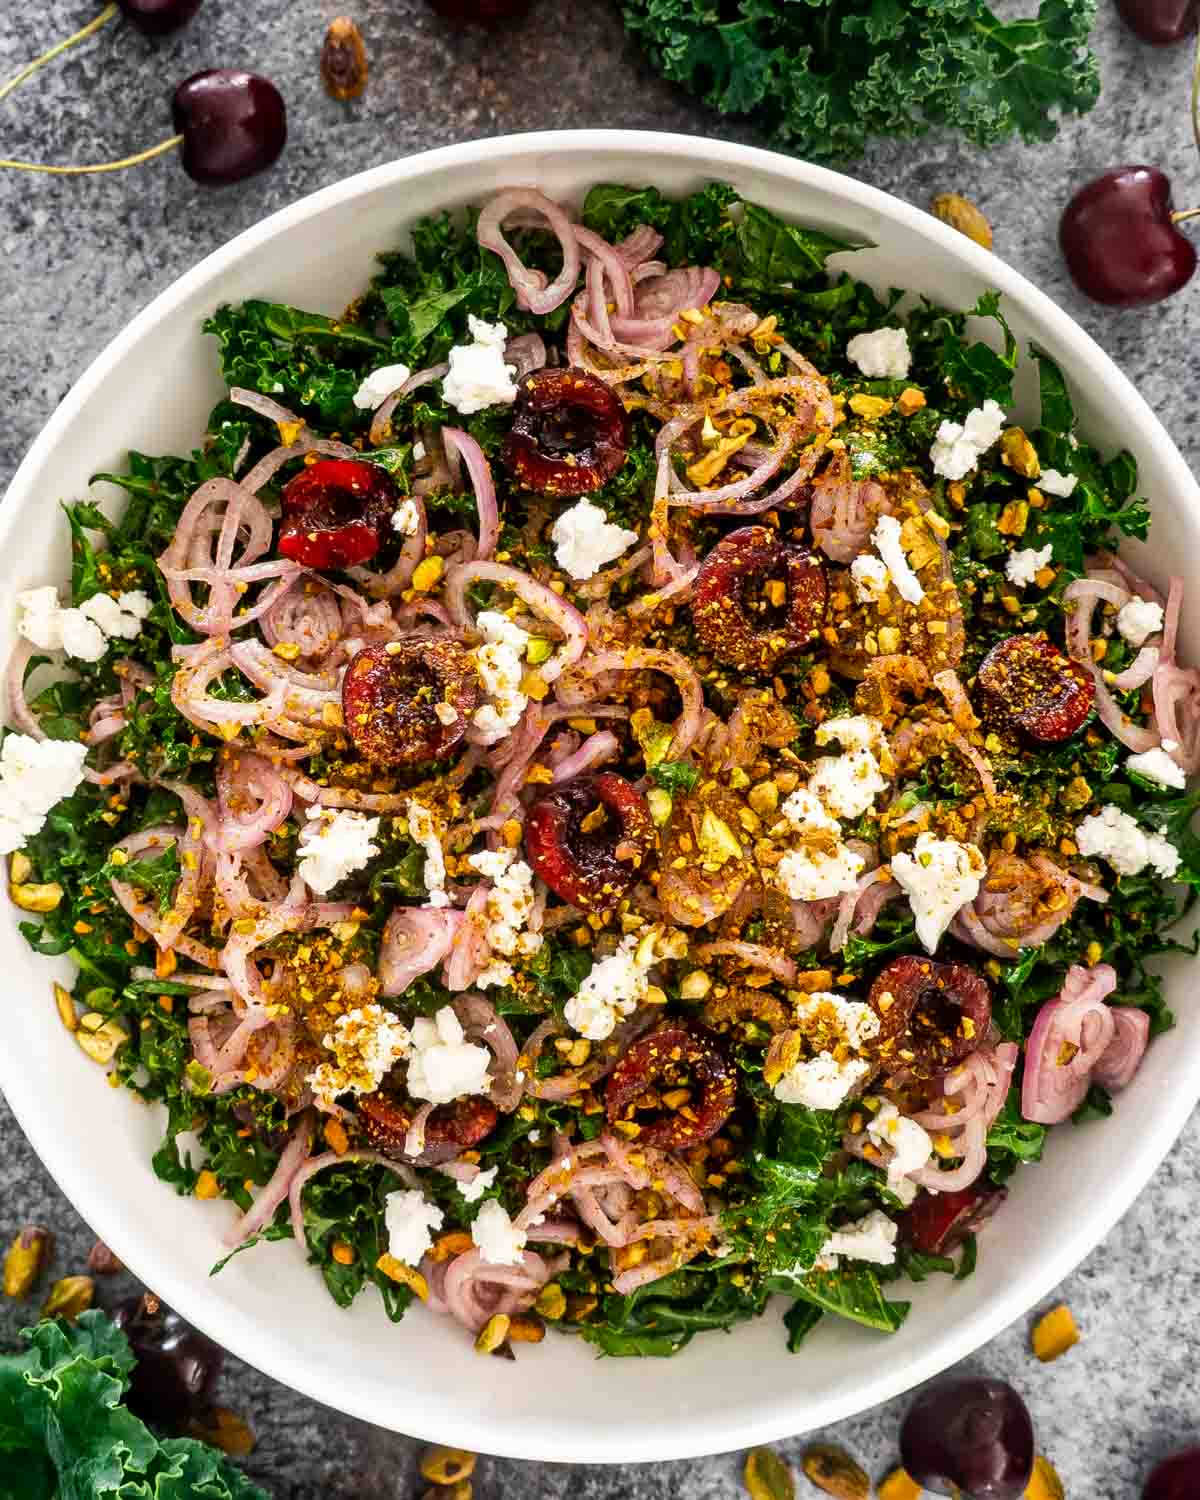 kale cherry salad in a white bowl.